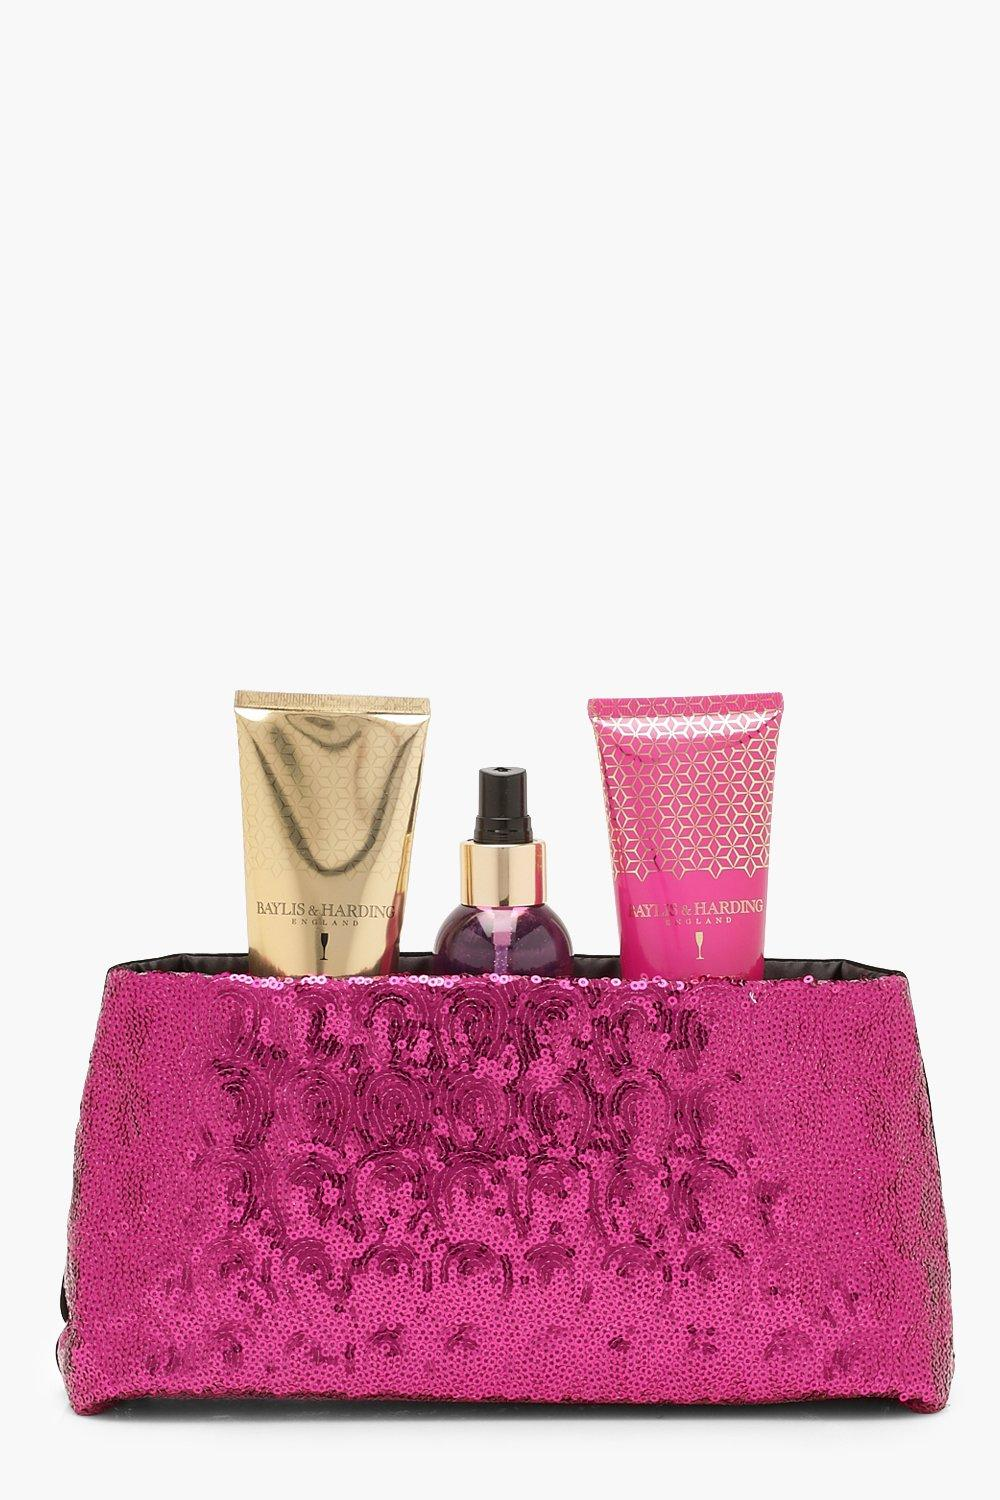 Baylis & Harding Prosecco Set With Clutch Bag